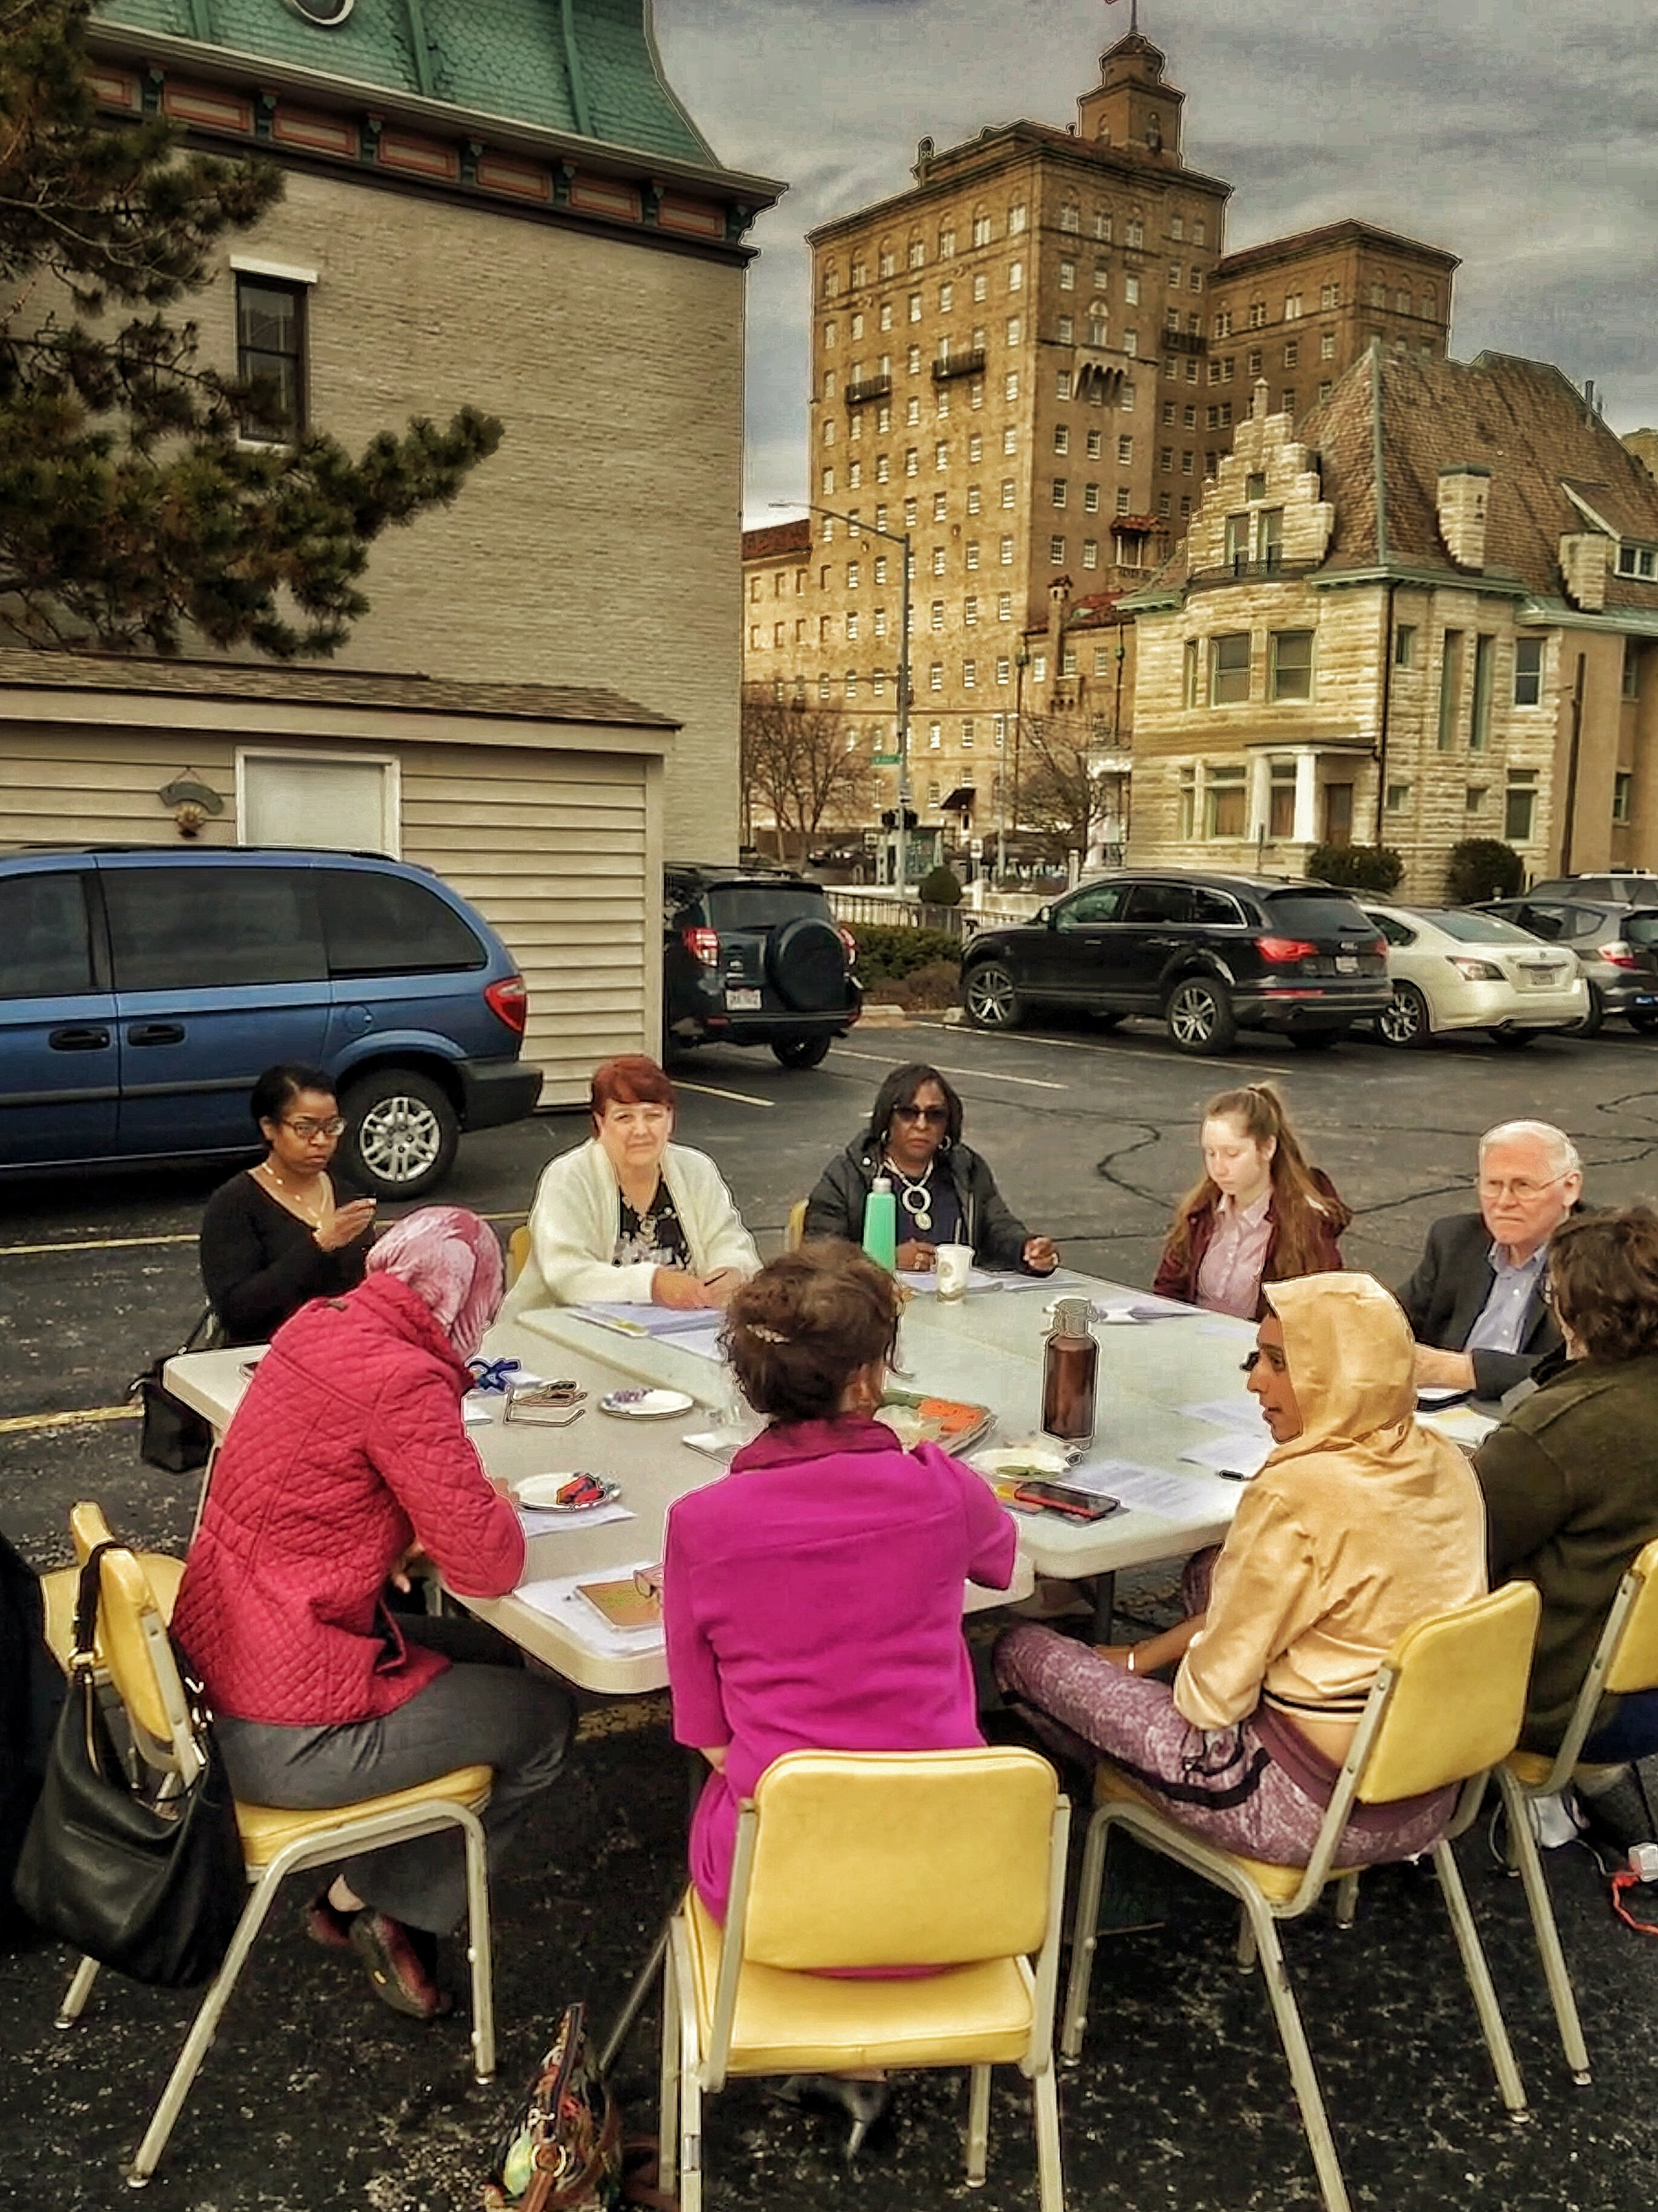 The March museum board meeting happened to fall on the warmest day of the year and members took full advantage to enjoy an early evening meeting in the museum's parking lot.